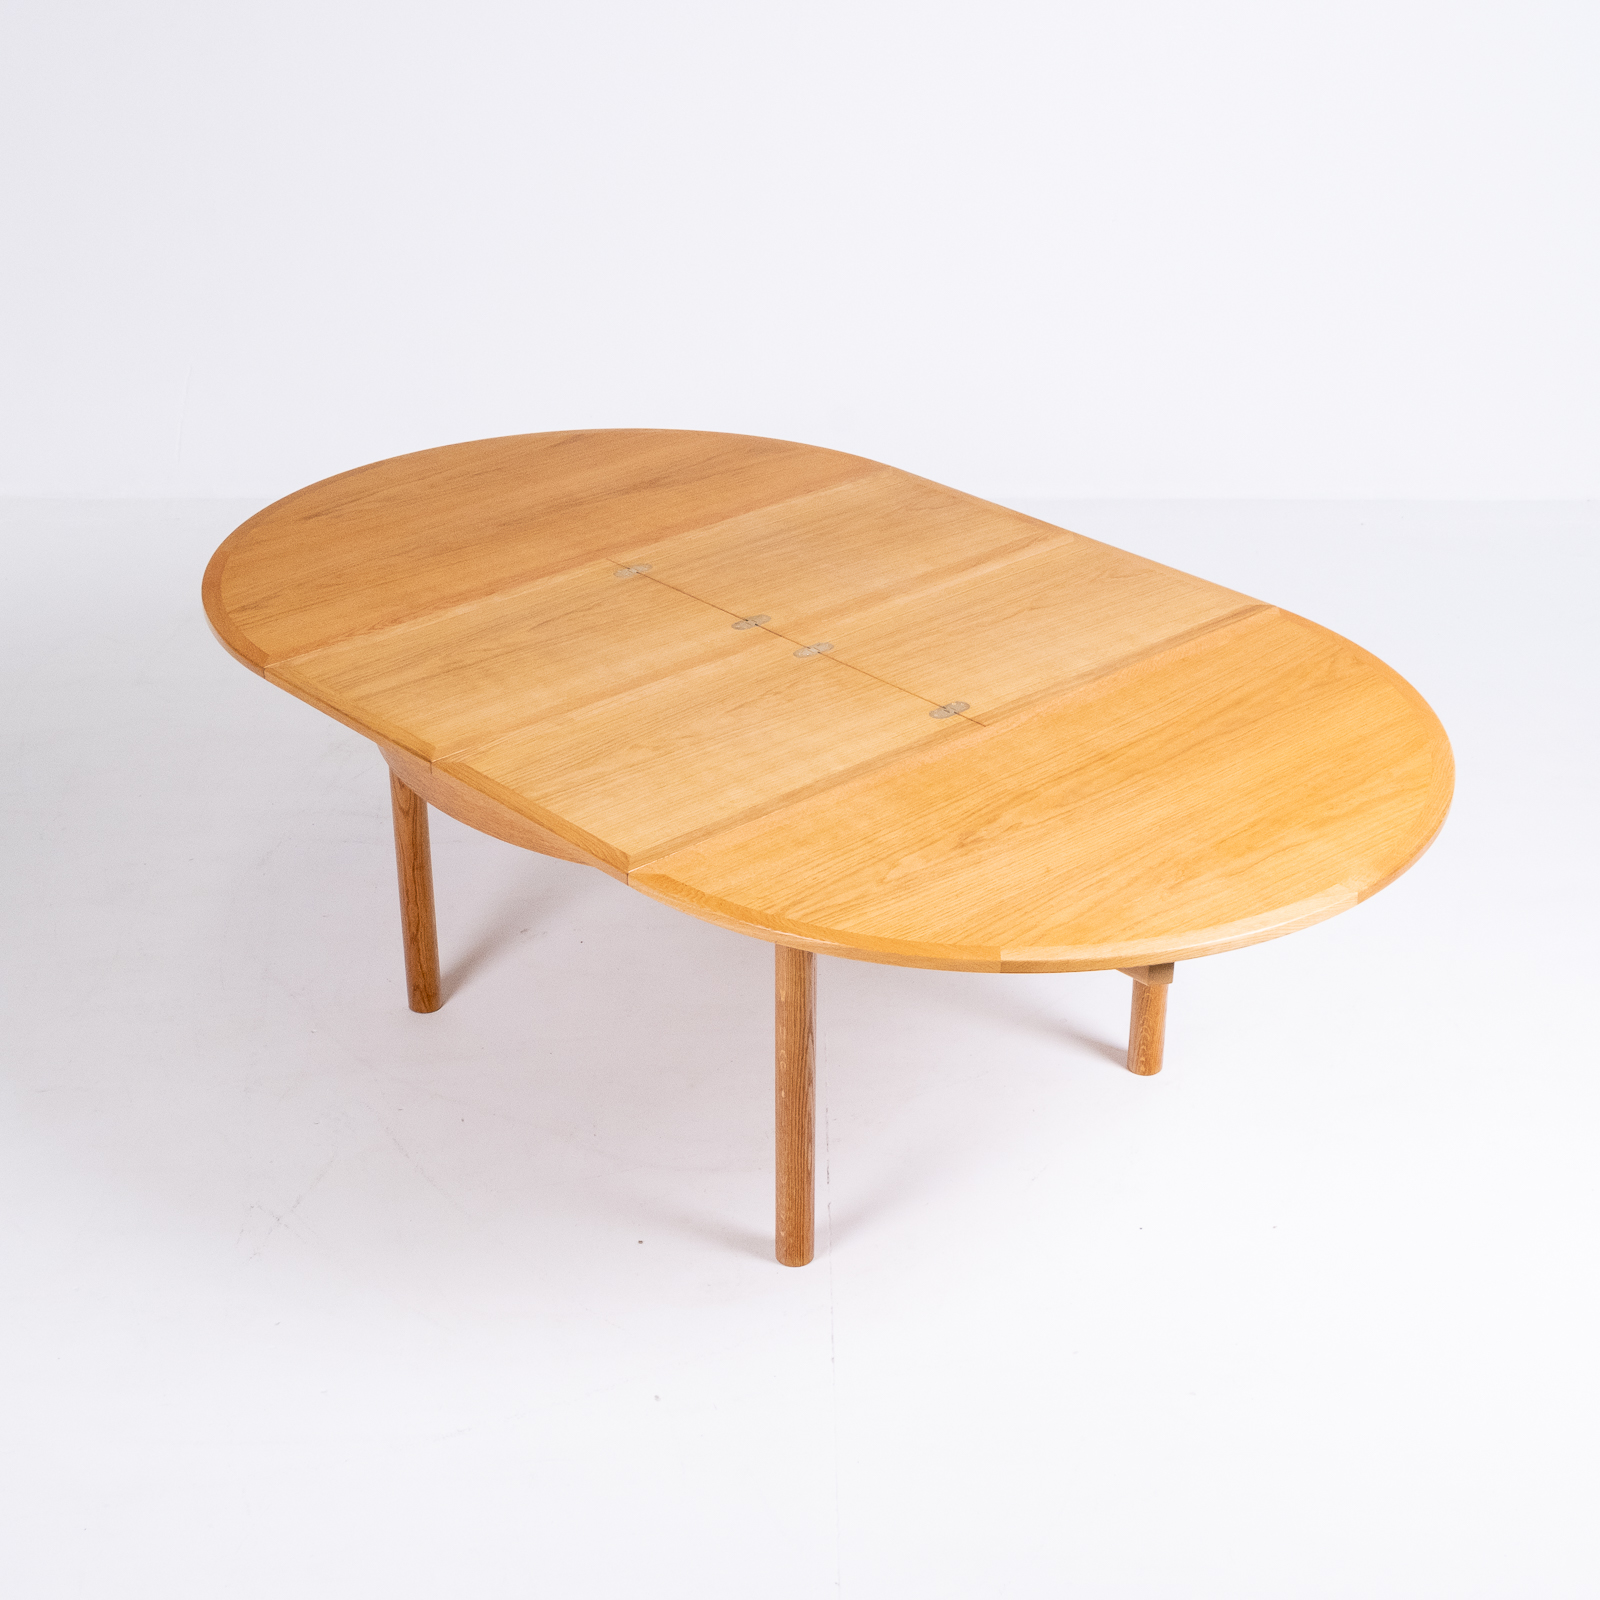 Round 140 Dining Table By Borge Mogensen For Karl Andersson & Söner In Oak With Butterfly Extensions, 1960s, Denmark80